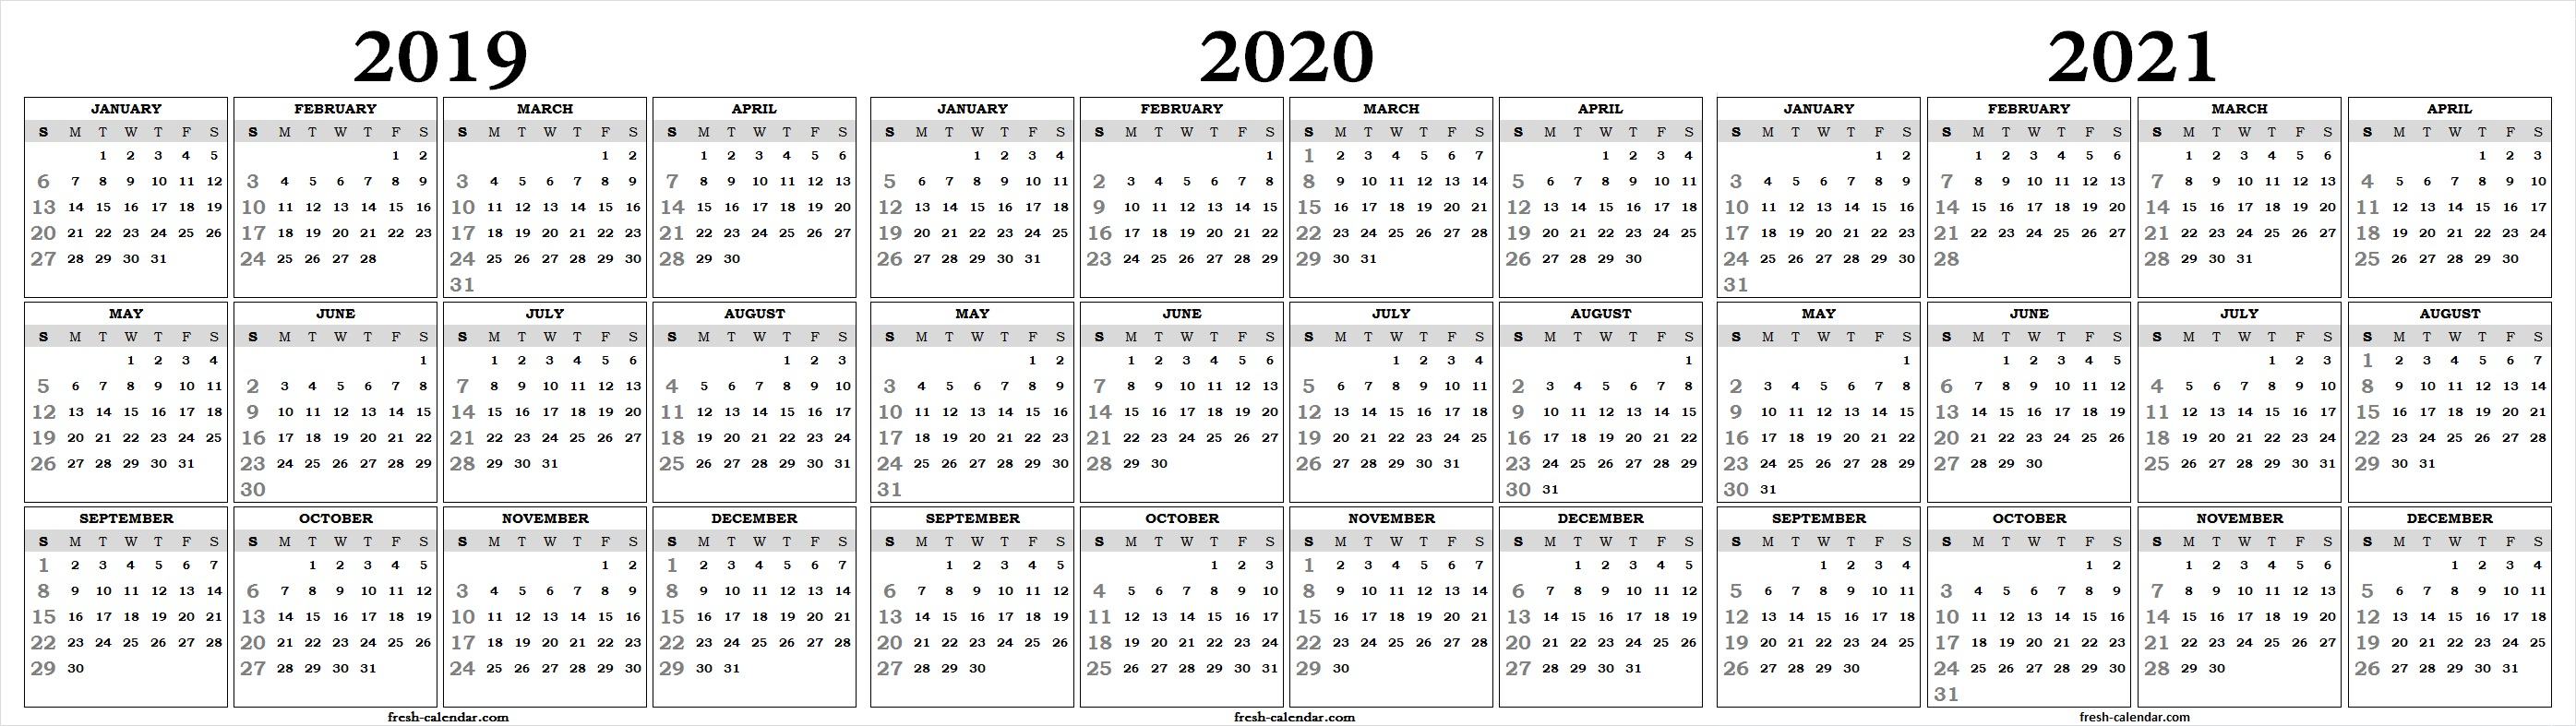 Three Yearly 2019 2020 2021 Calendar Printable Free | Blank Template within Calendar Yearly 2019 2020 2021